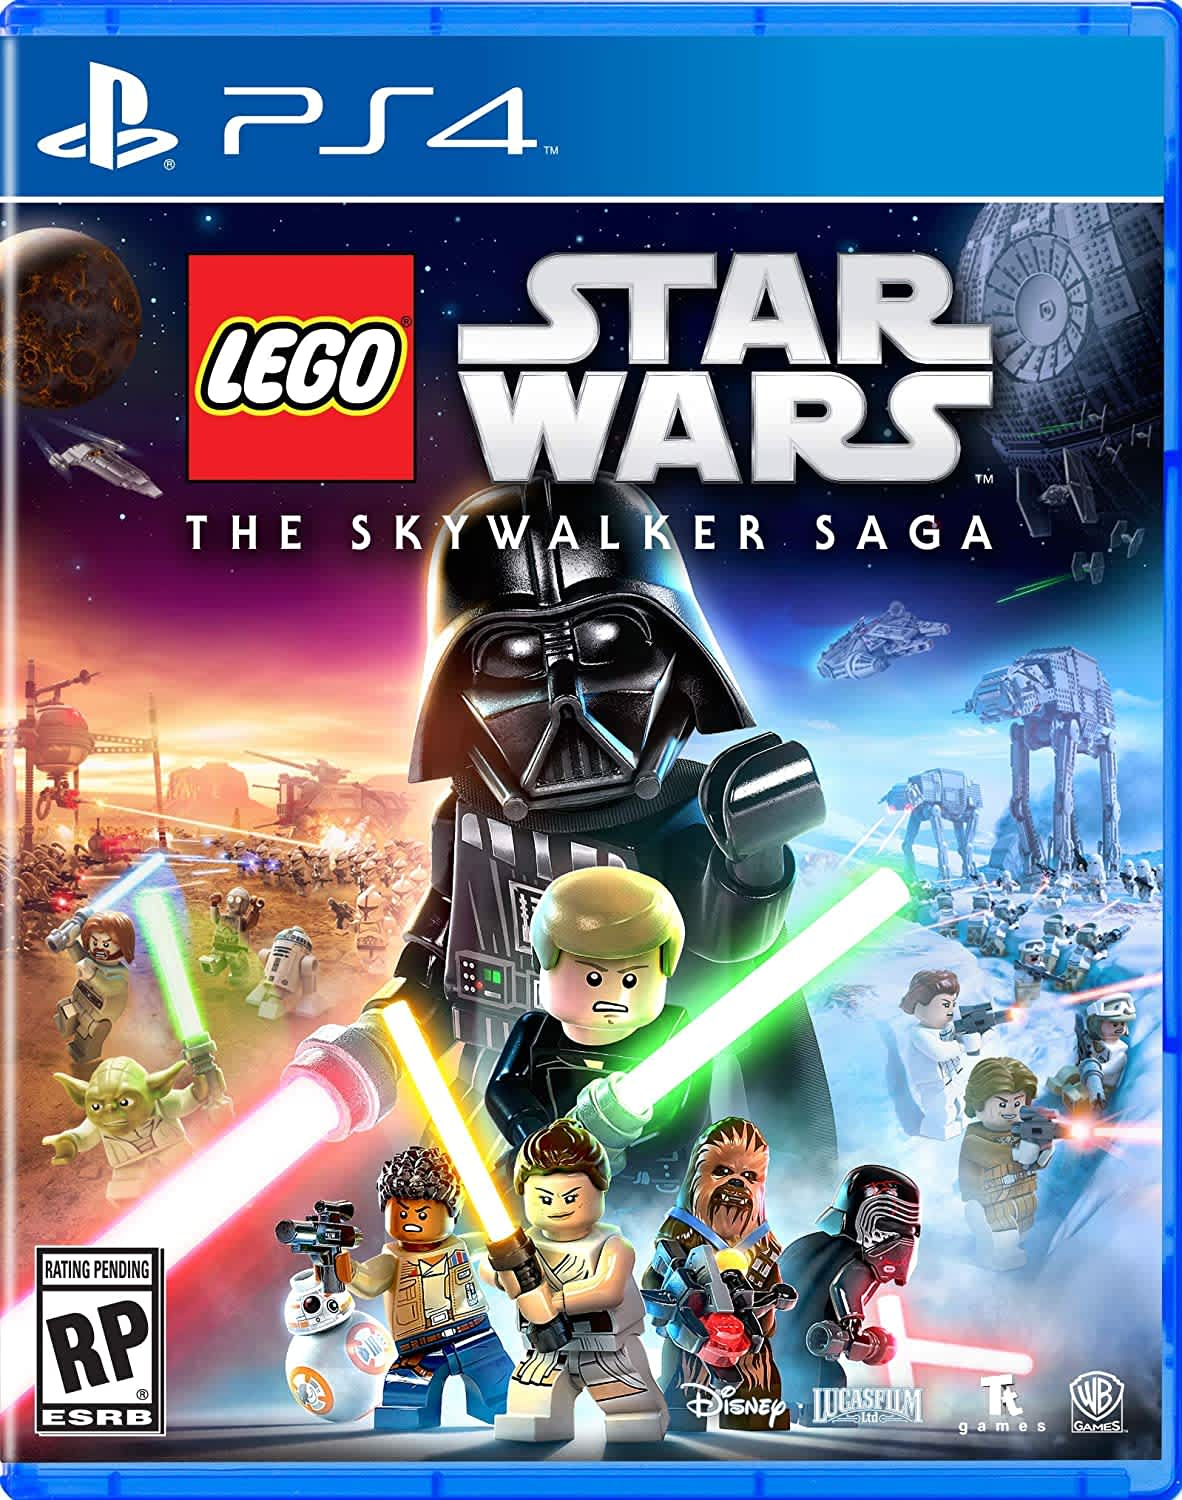 LEGO Star Wars: The Skywalker Saga! for PS4, XB1, or Switch